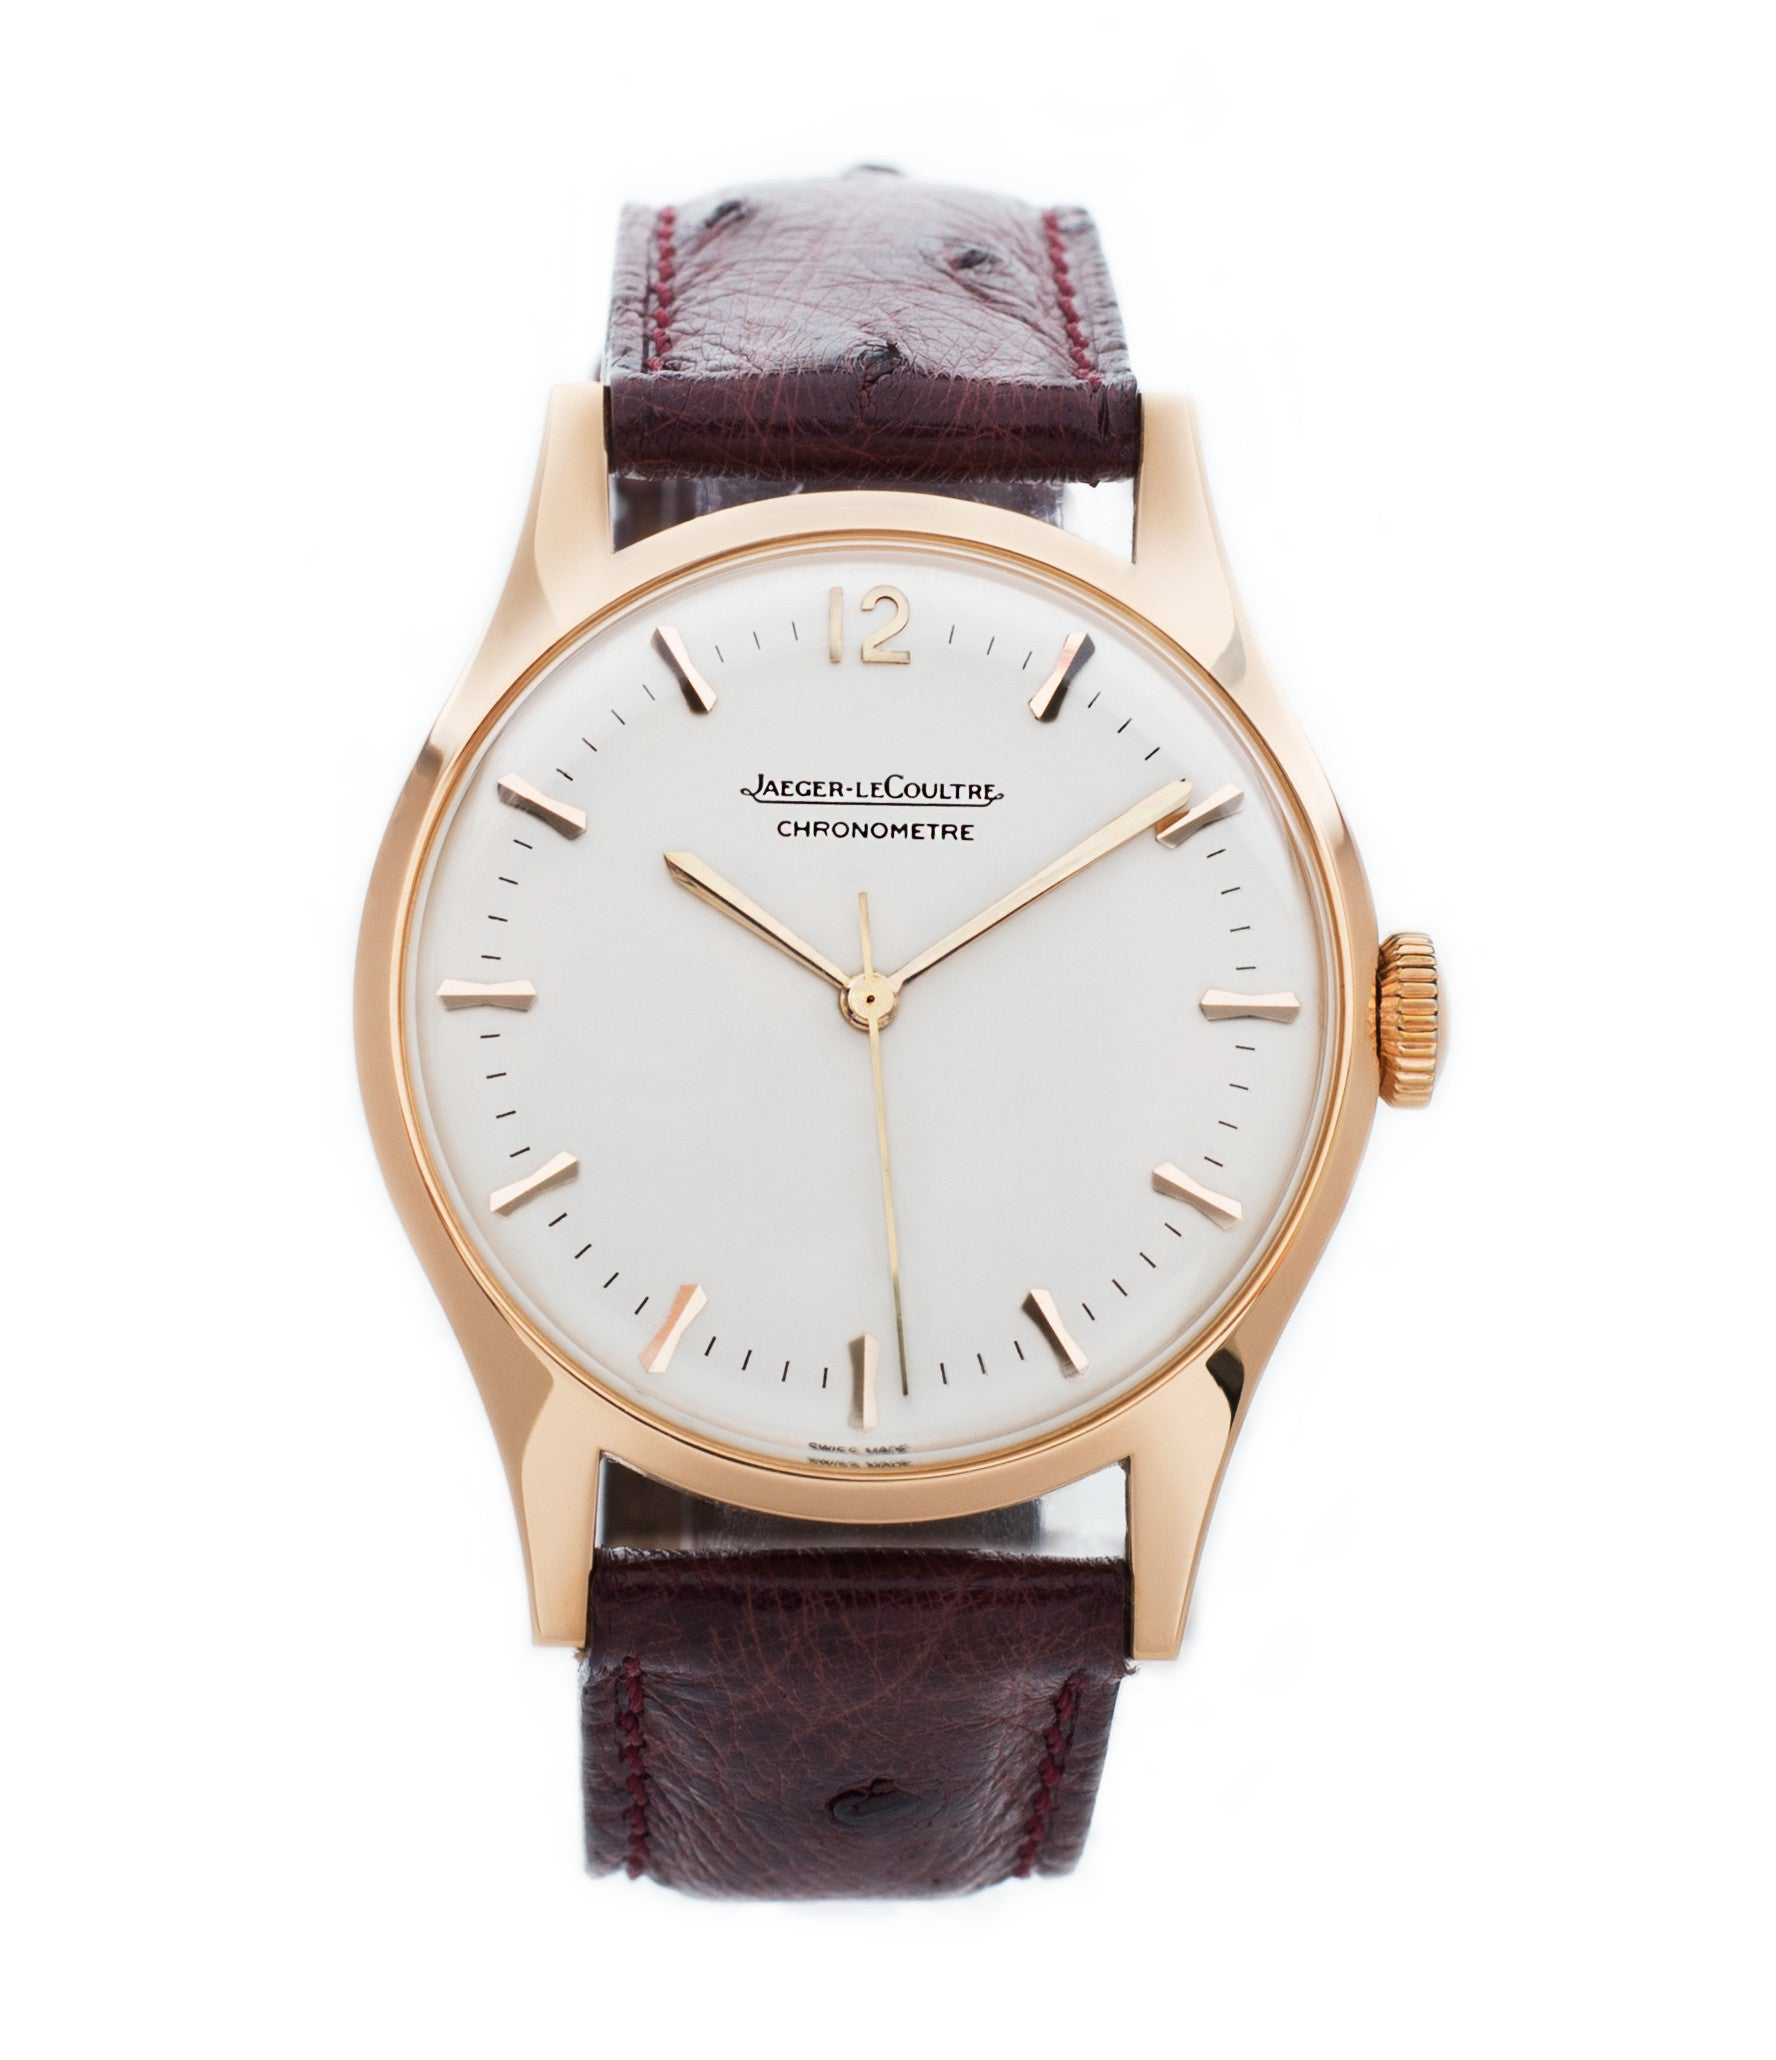 buy Jaeger-LeCoultre Geophysic Luxe 2985 rose gold rare vintage watch online for sale at A Collected Man London